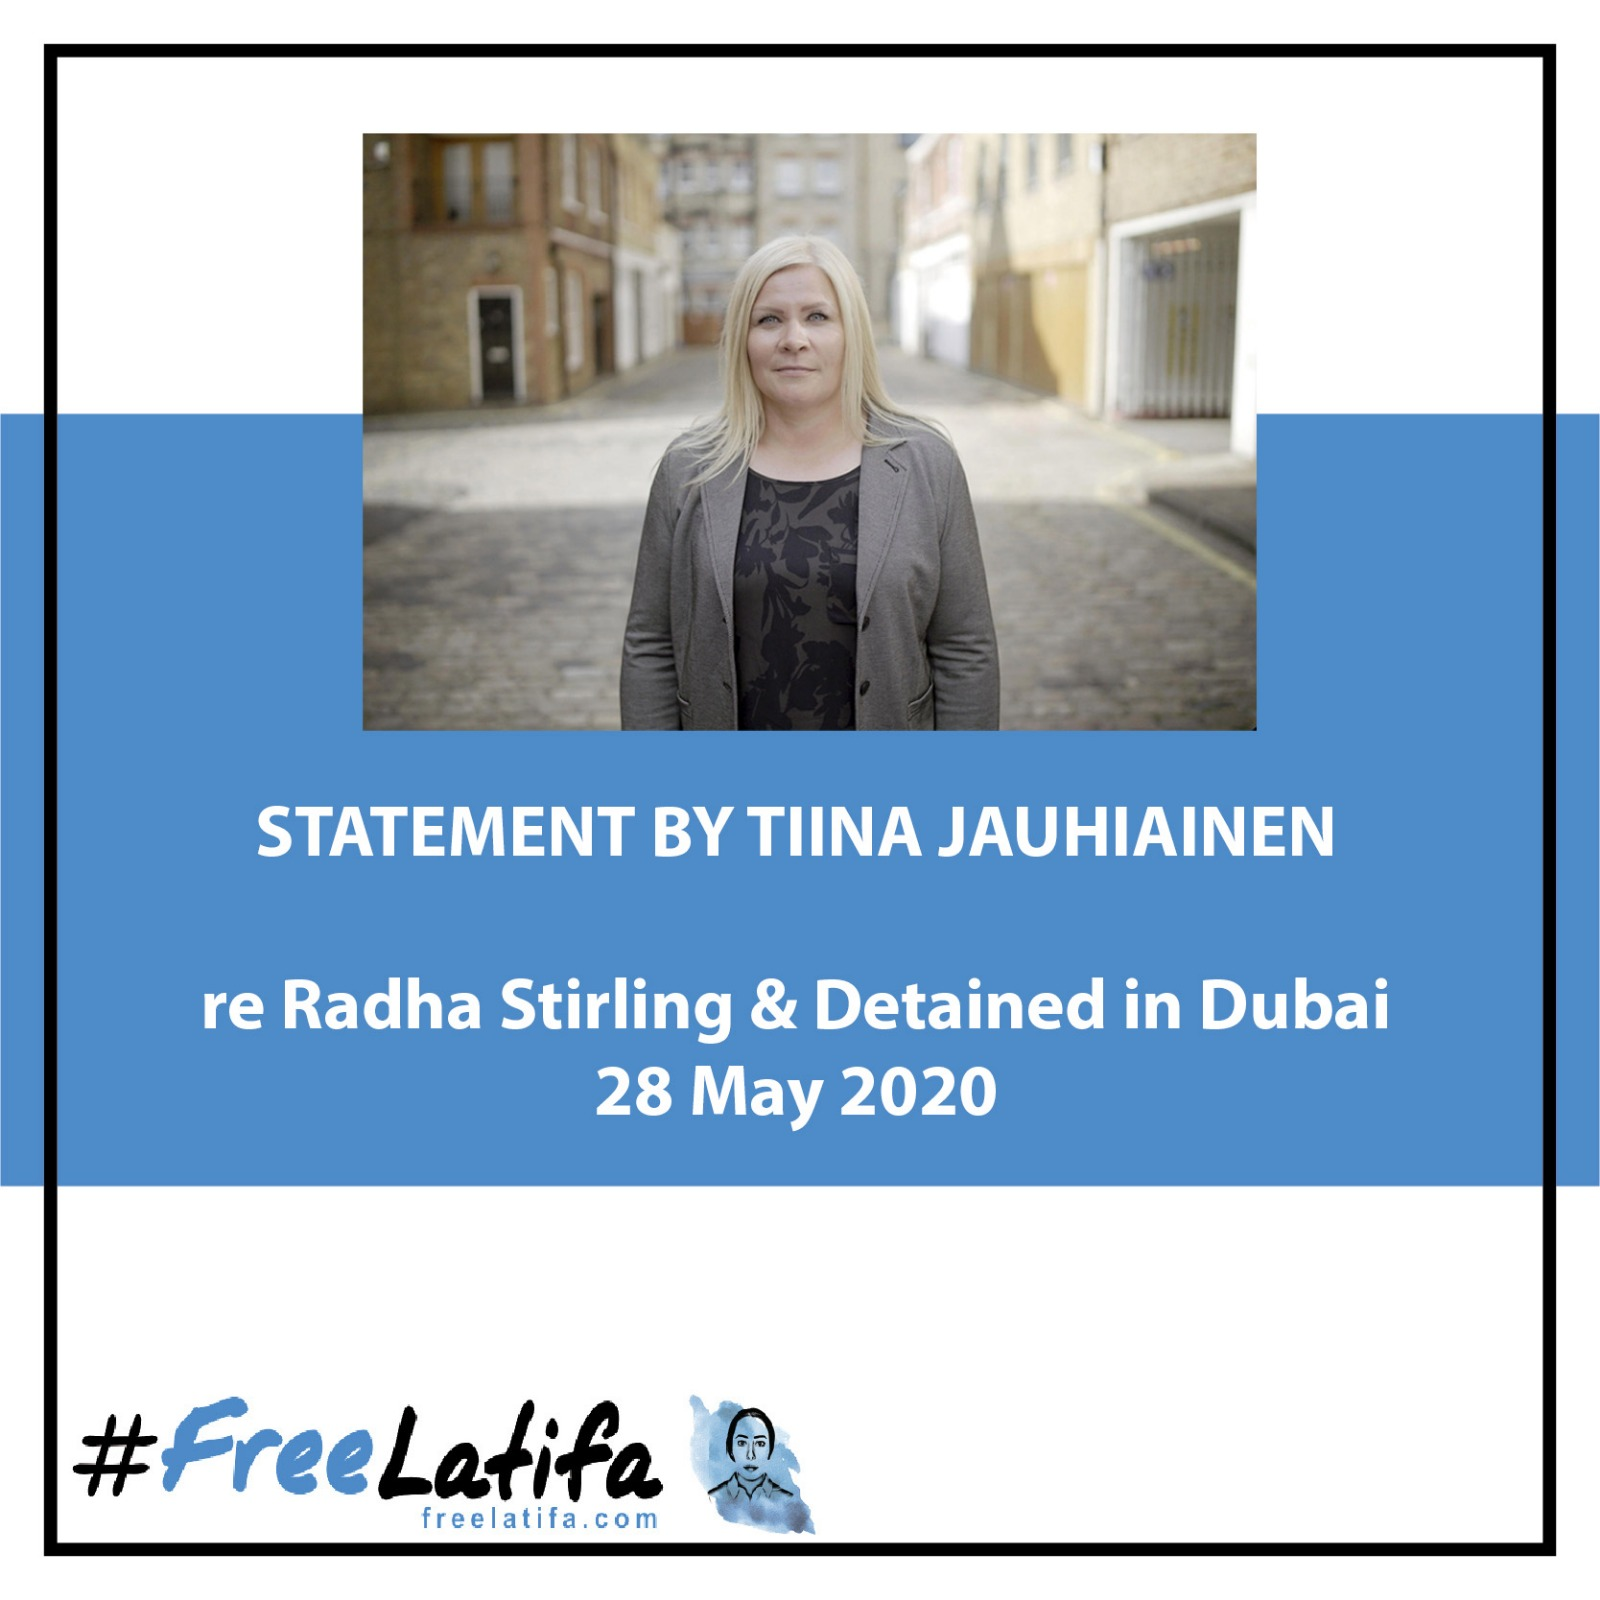 Statement by Tiina Jauhiainen, following comments by Radha Stirling & Detained in Dubai